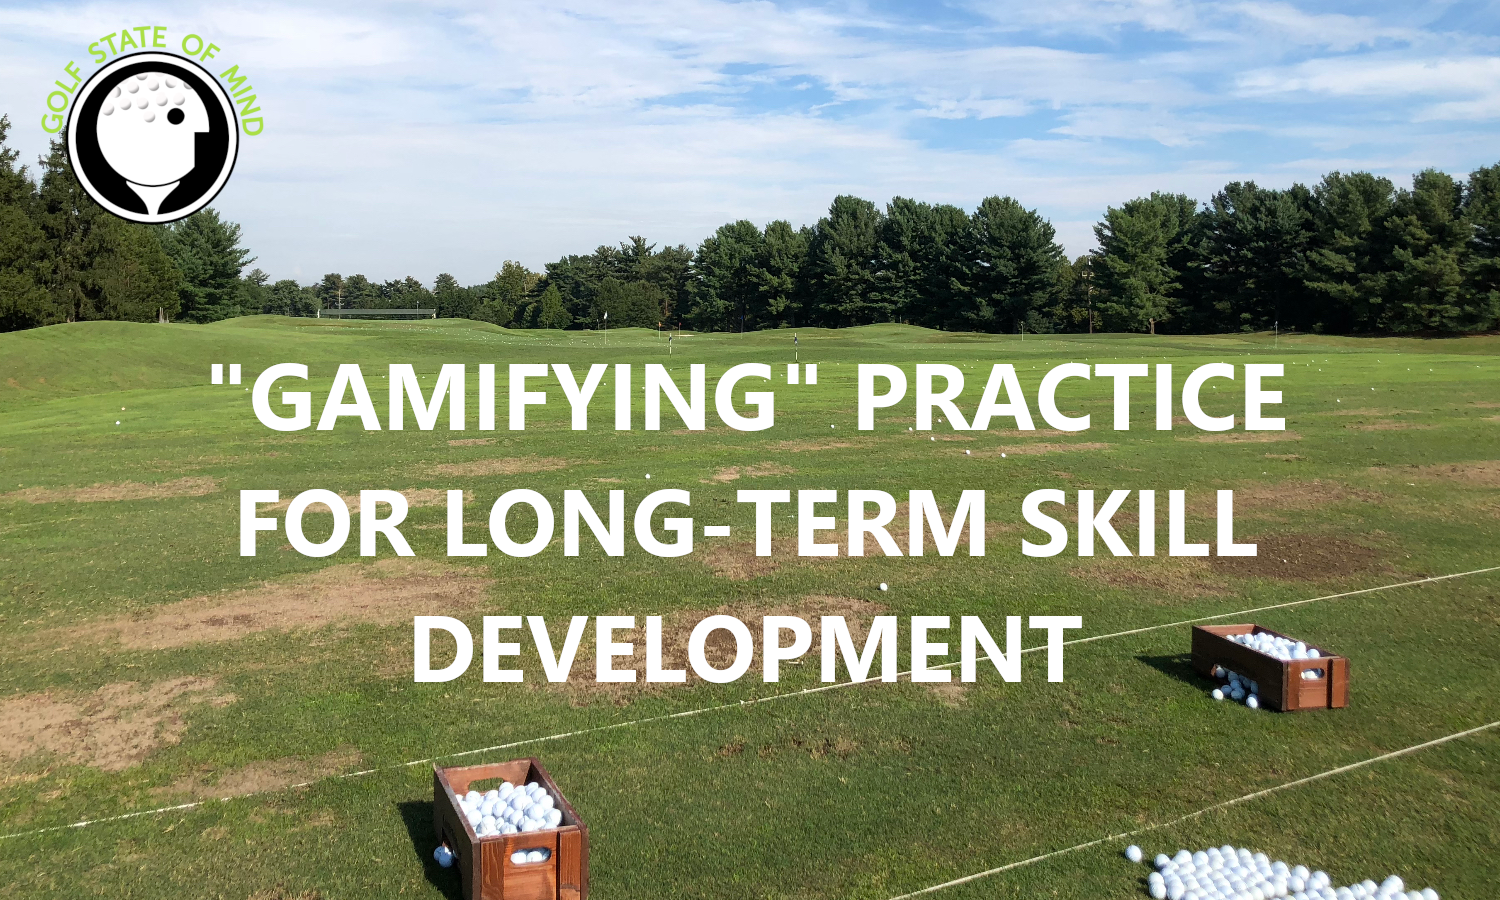 Gamifying Practice For Long-term Skill Development